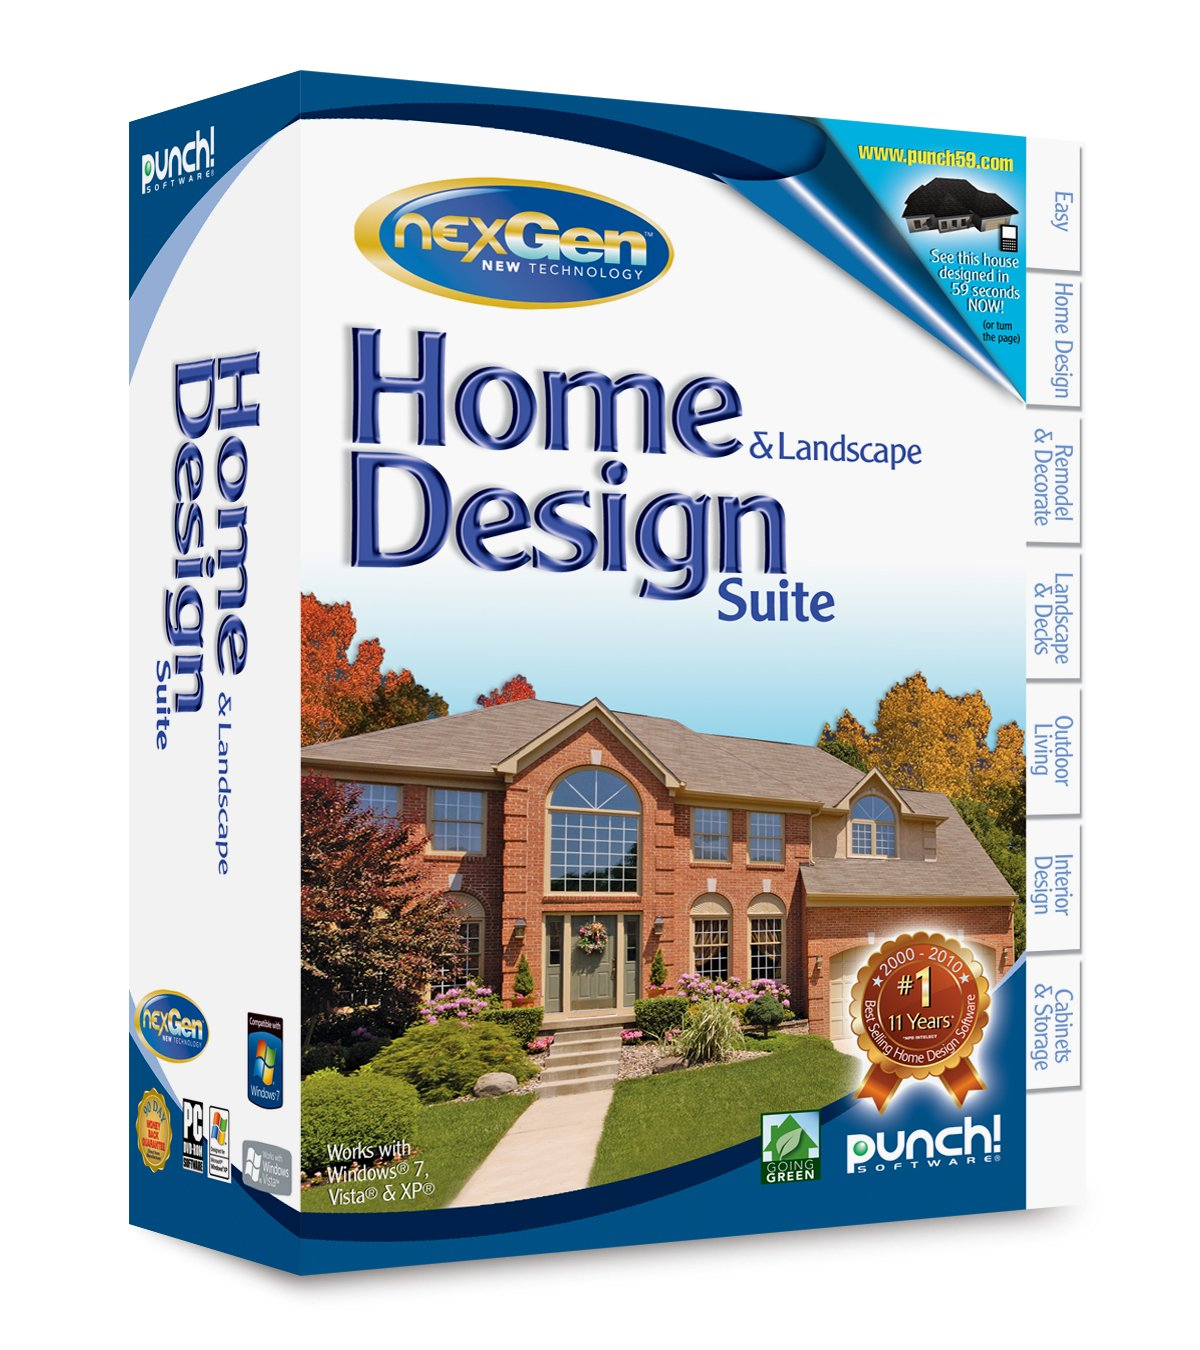 Punch nexgen home and landscape design premium home for Punch home landscape design 17 5 trial